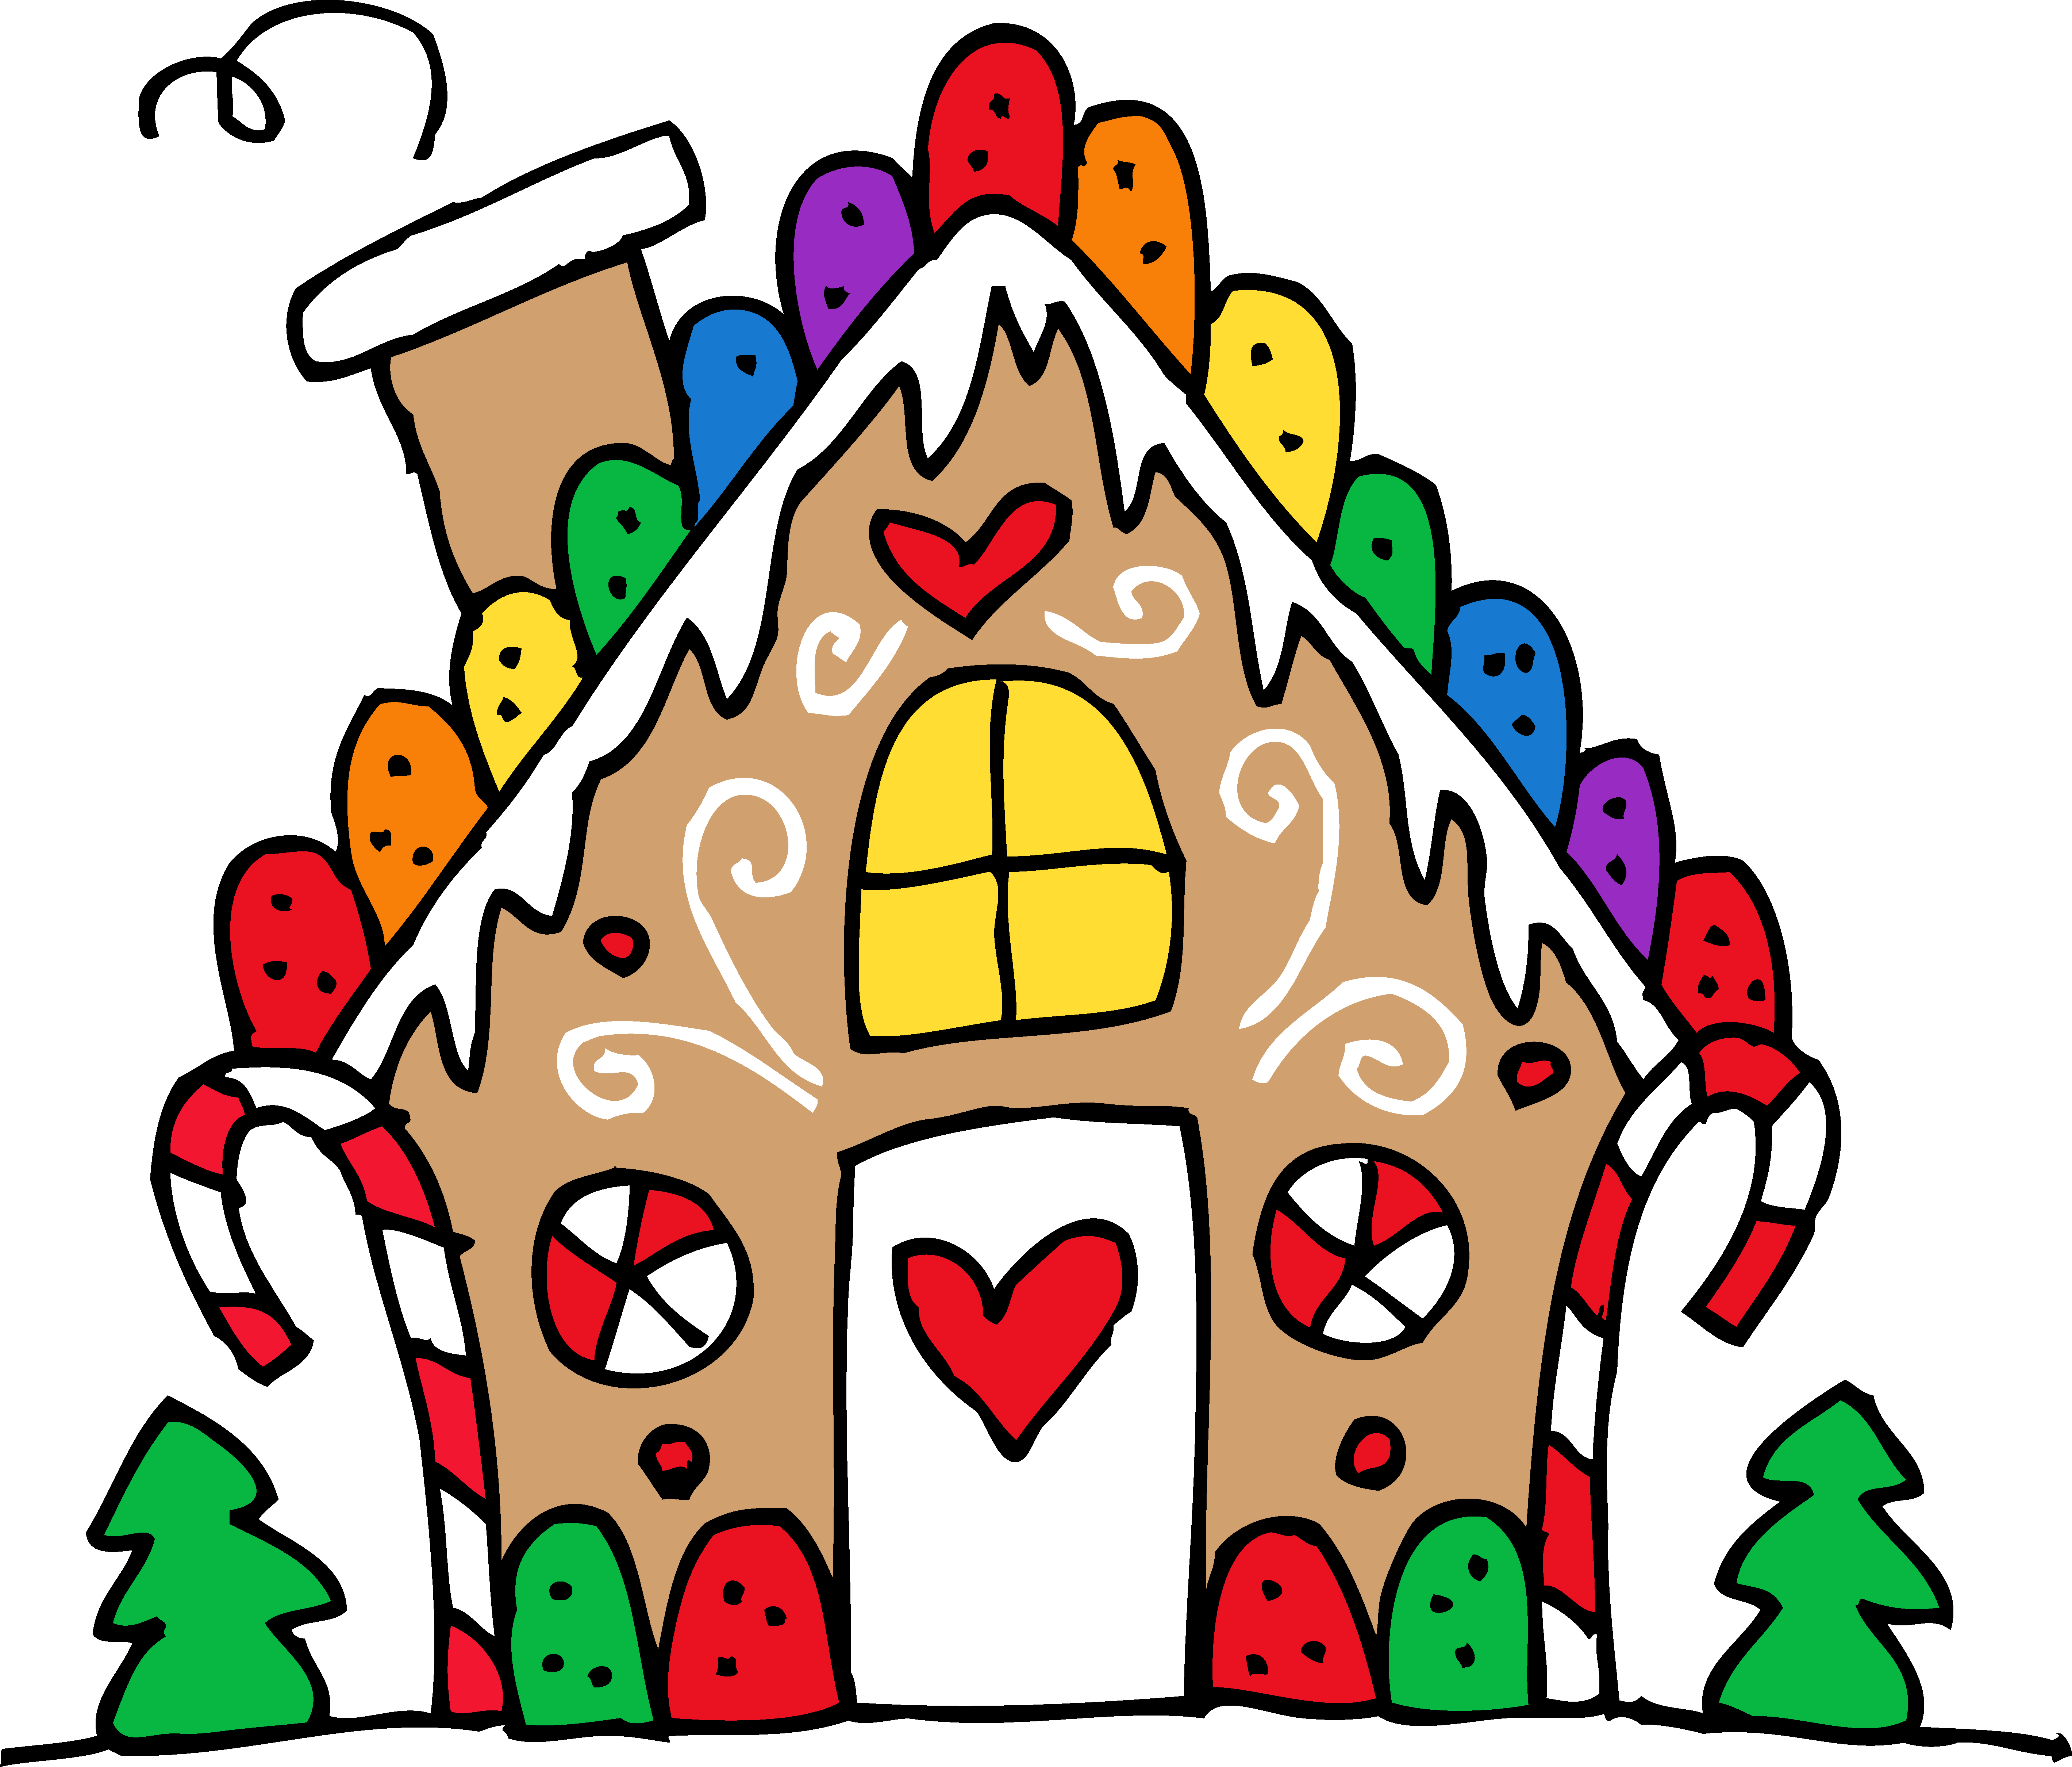 Graham cracker gingerbread house clipart clip library stock The Social Committee is excited to invite you to a Gingerbread House ... clip library stock